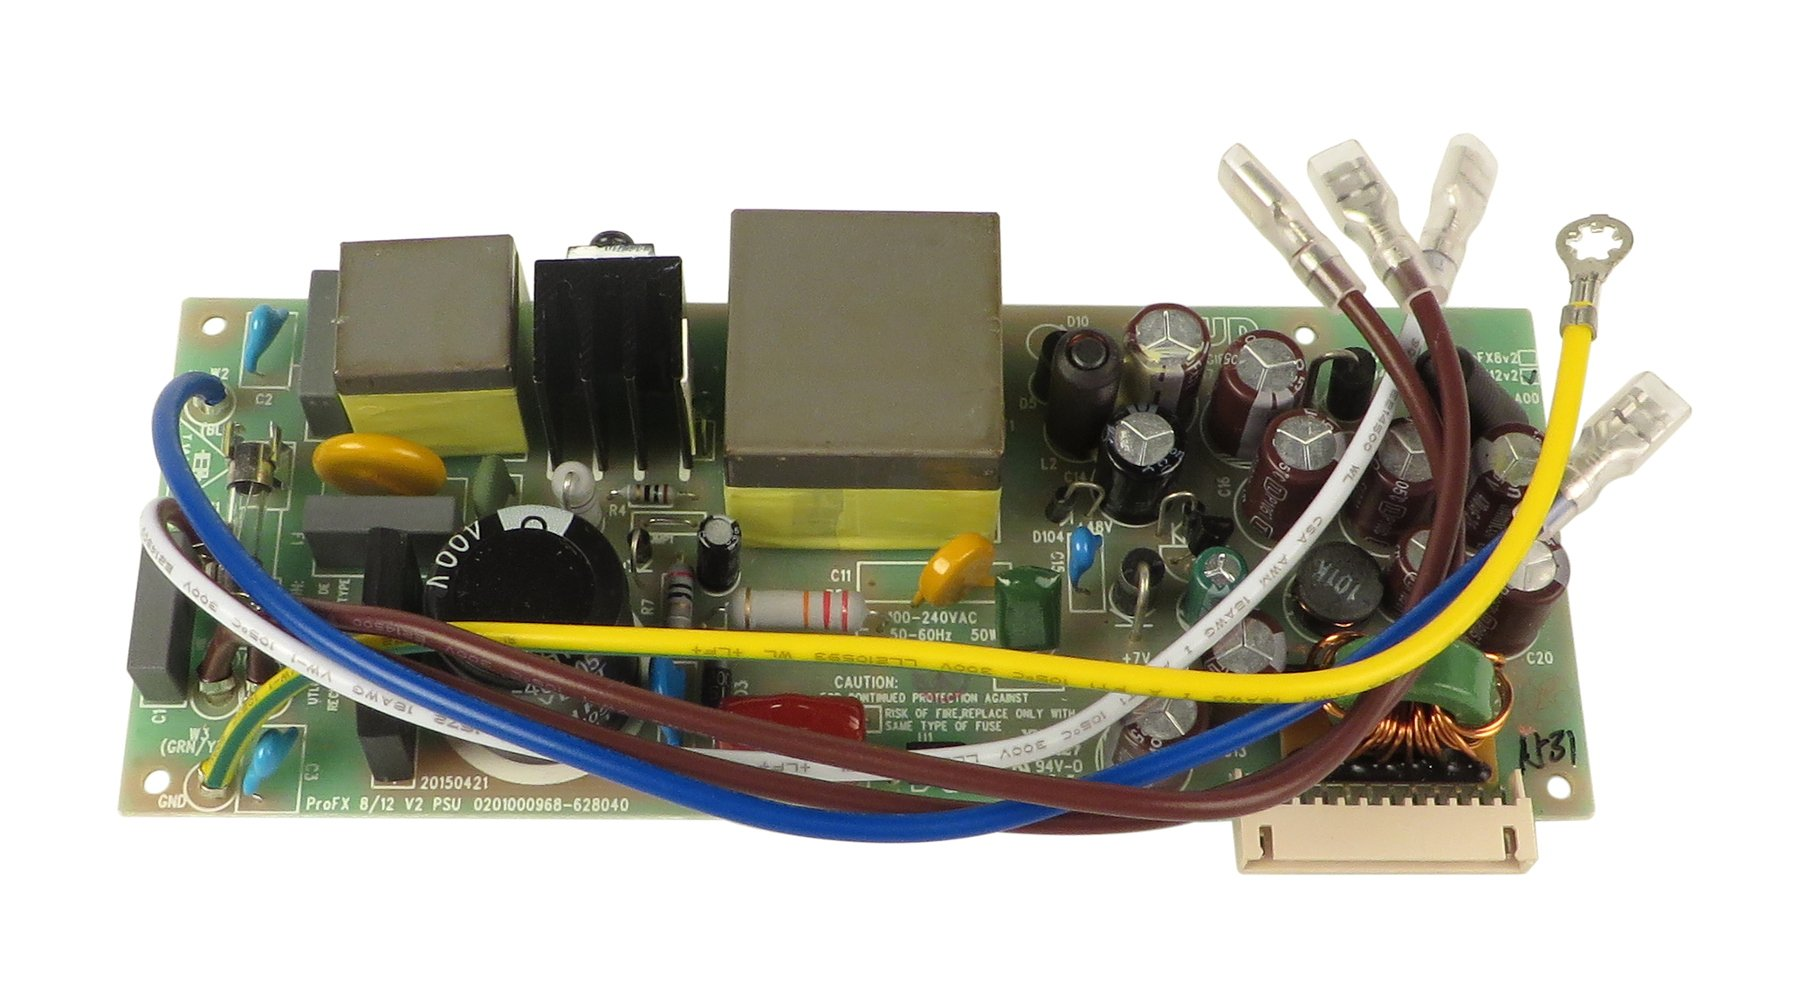 Mackie BP-2045531-01 Power Supply PCB for ProFX12v2 BP-2045531-01